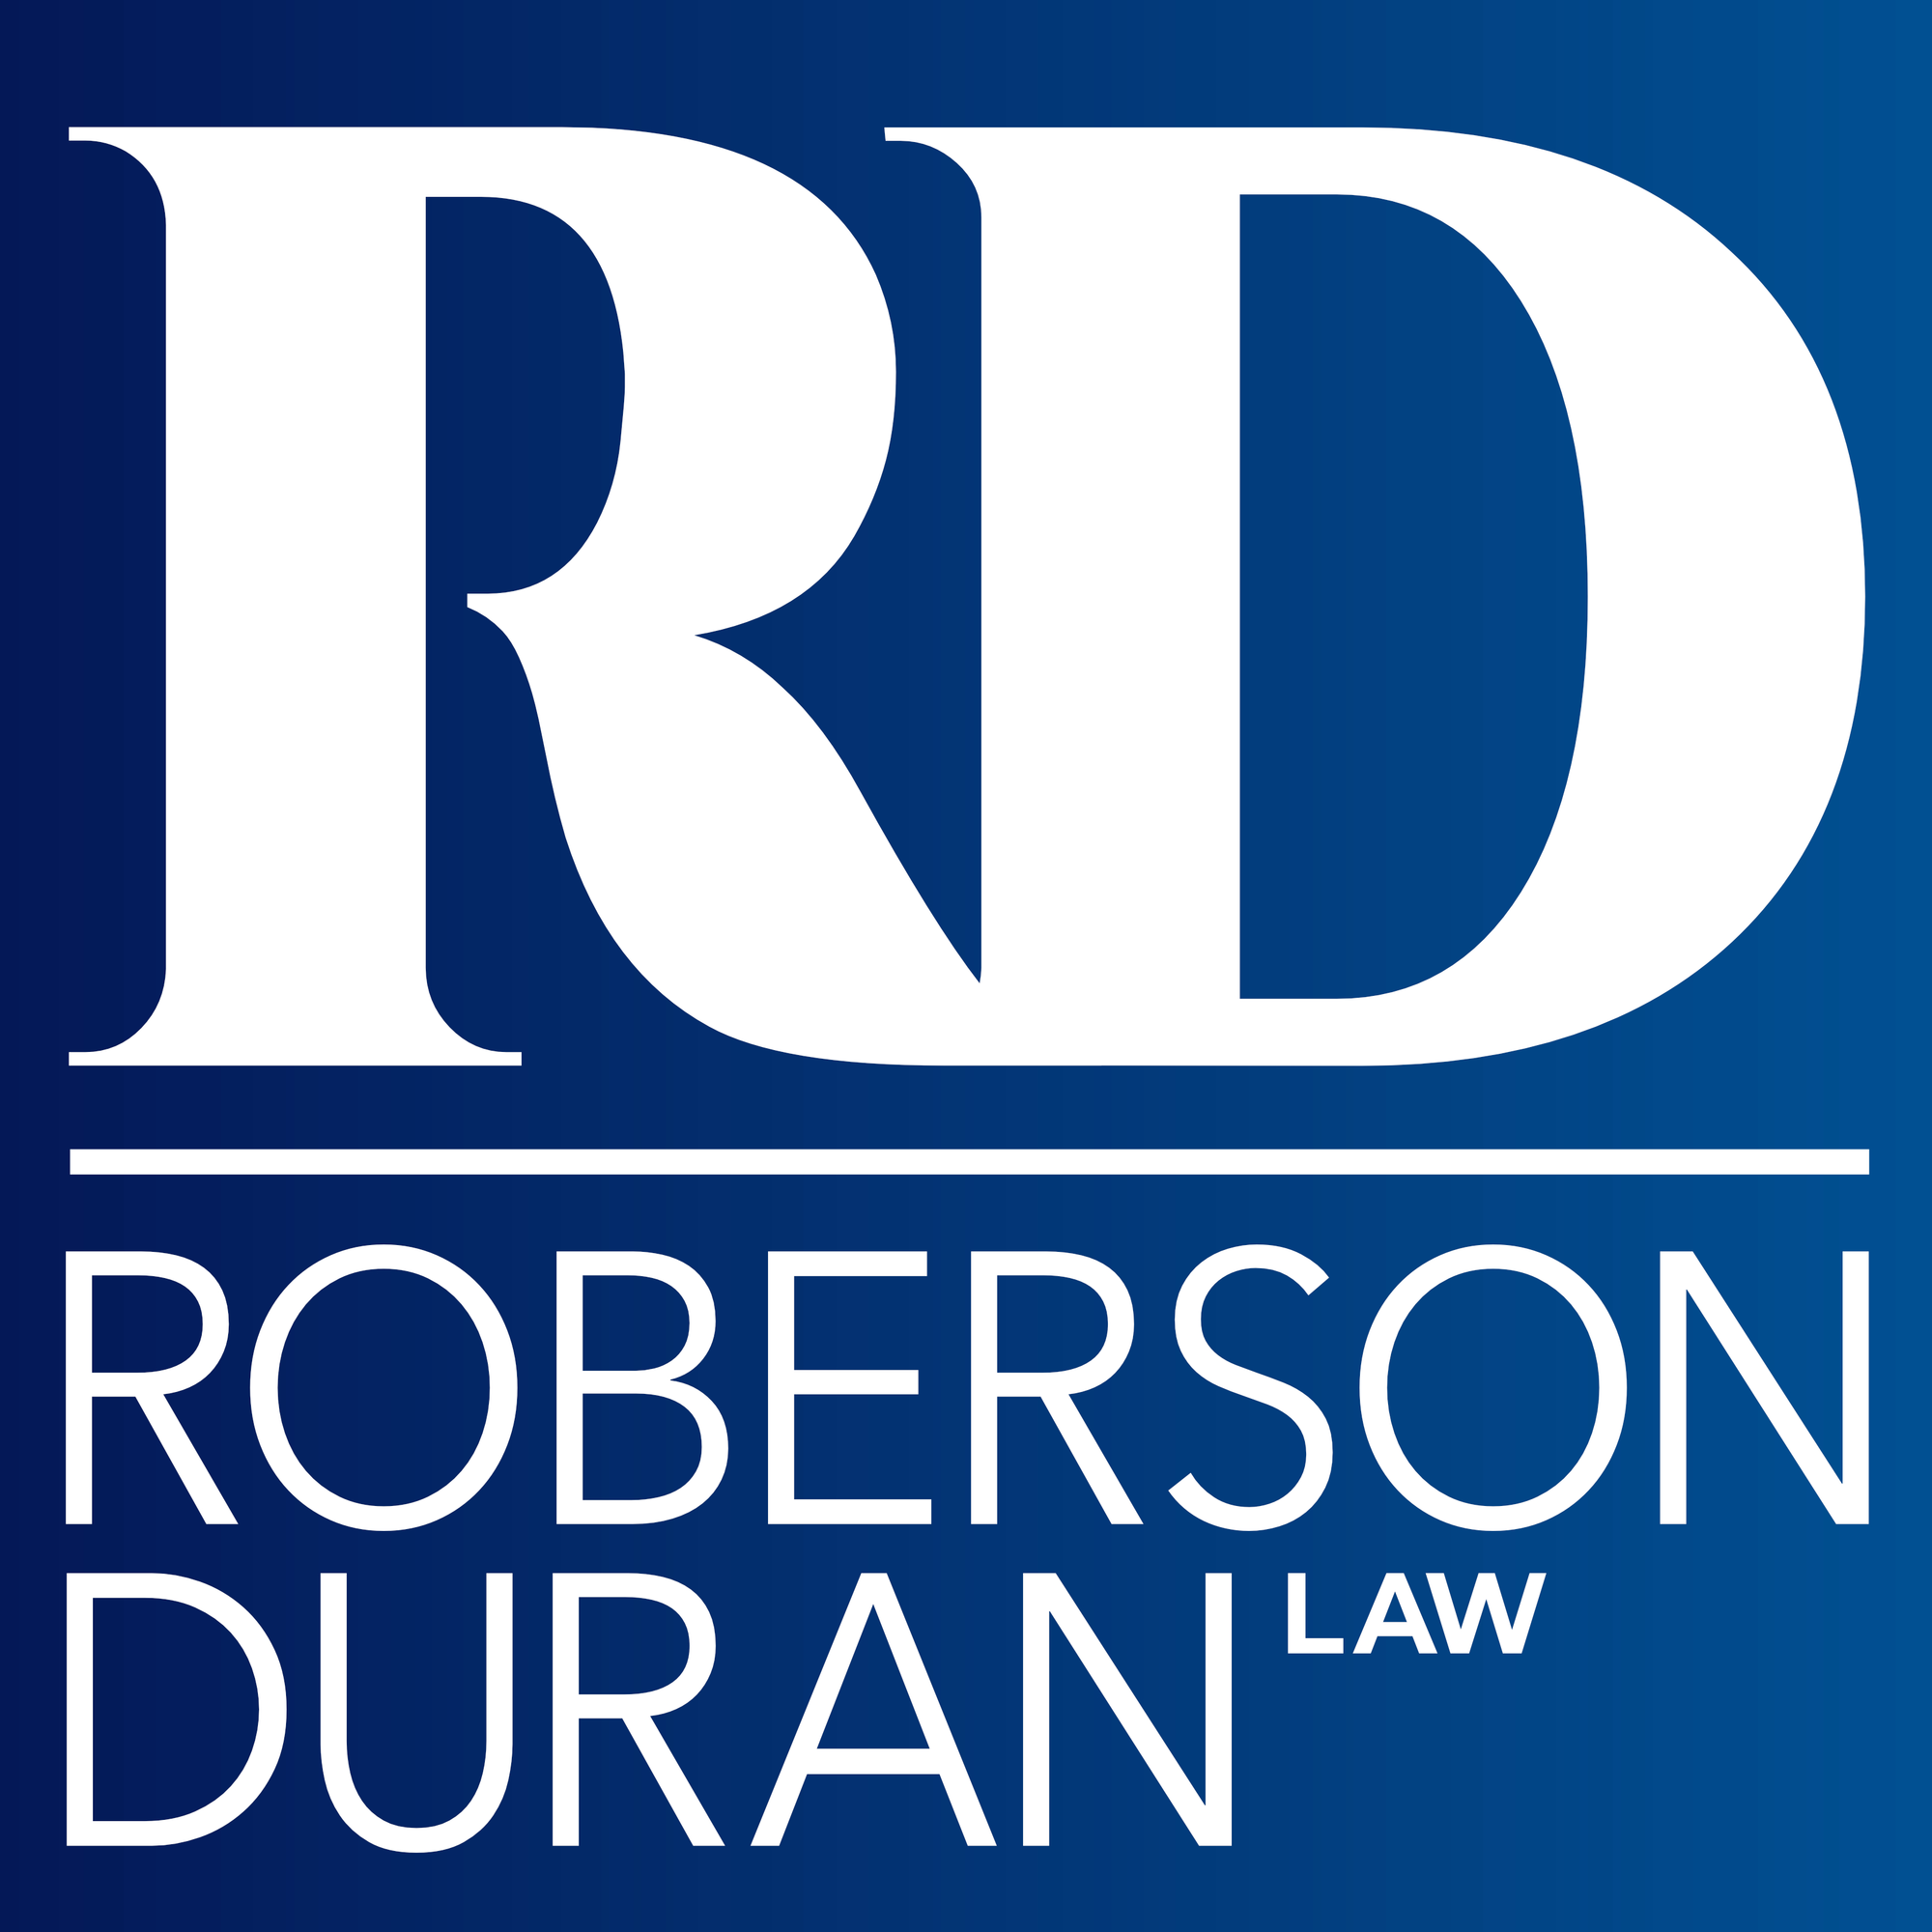 Roberson Duran Law Phone Consultation - Client Form